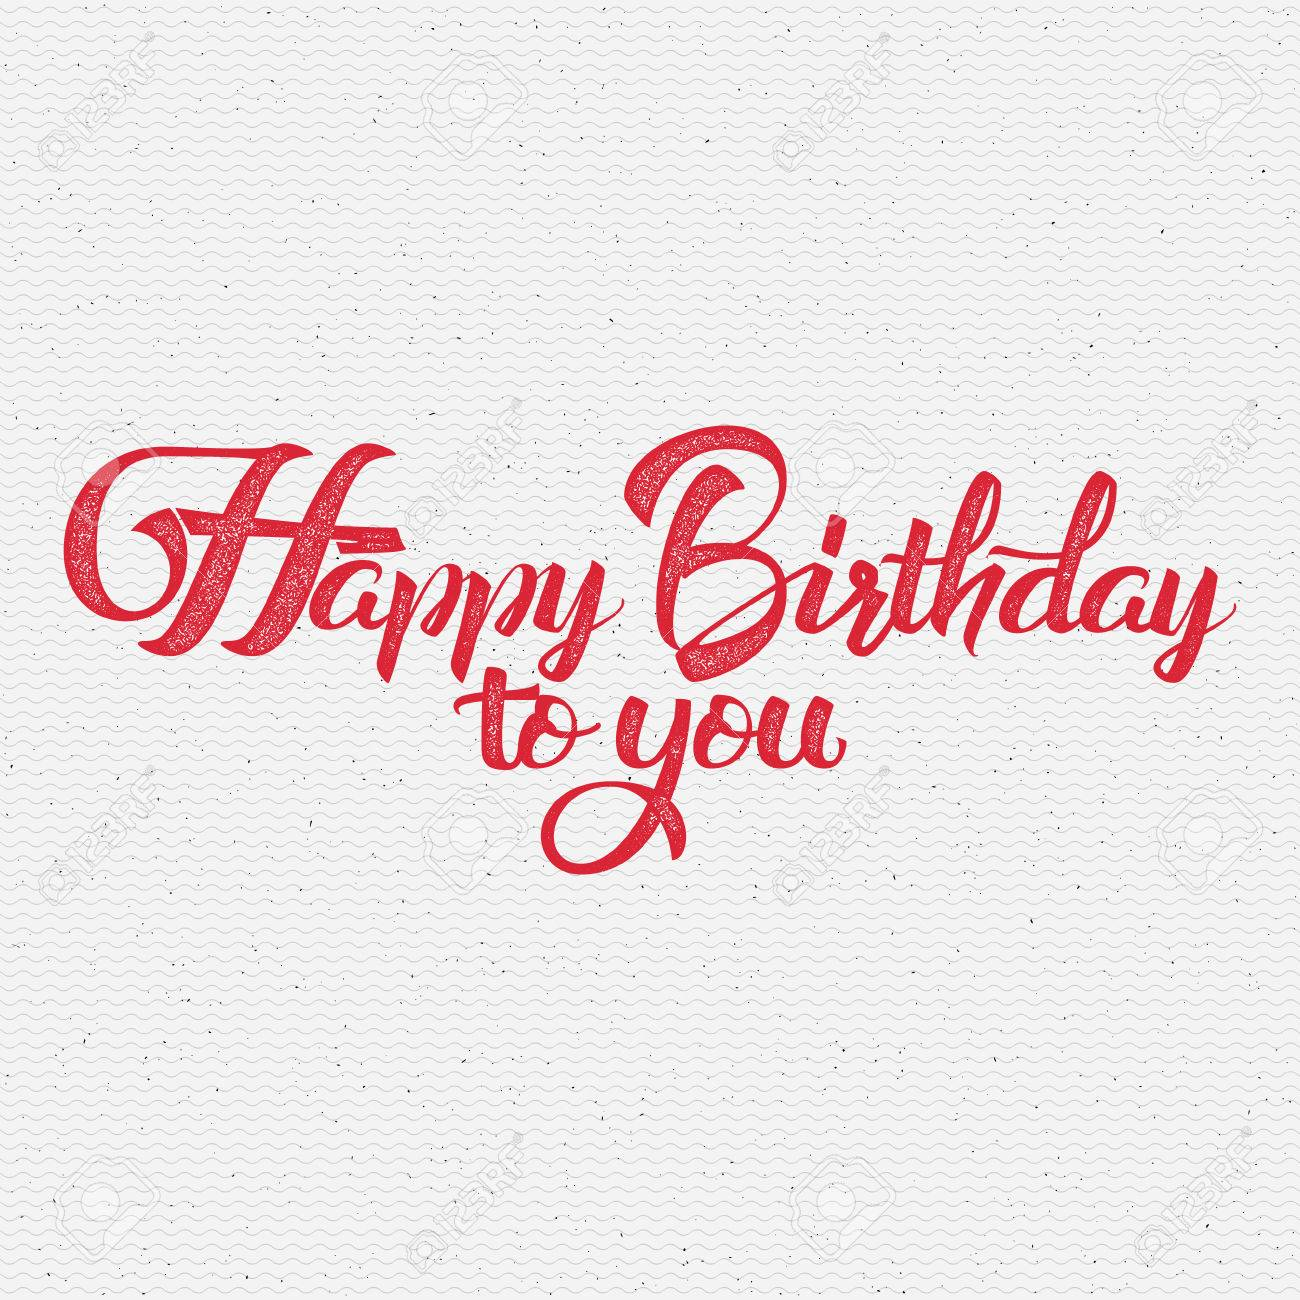 Happy birthday calligraphy art it can be used to design greeting happy birthday calligraphy art it can be used to design greeting cards magazines posters bookmarktalkfo Gallery